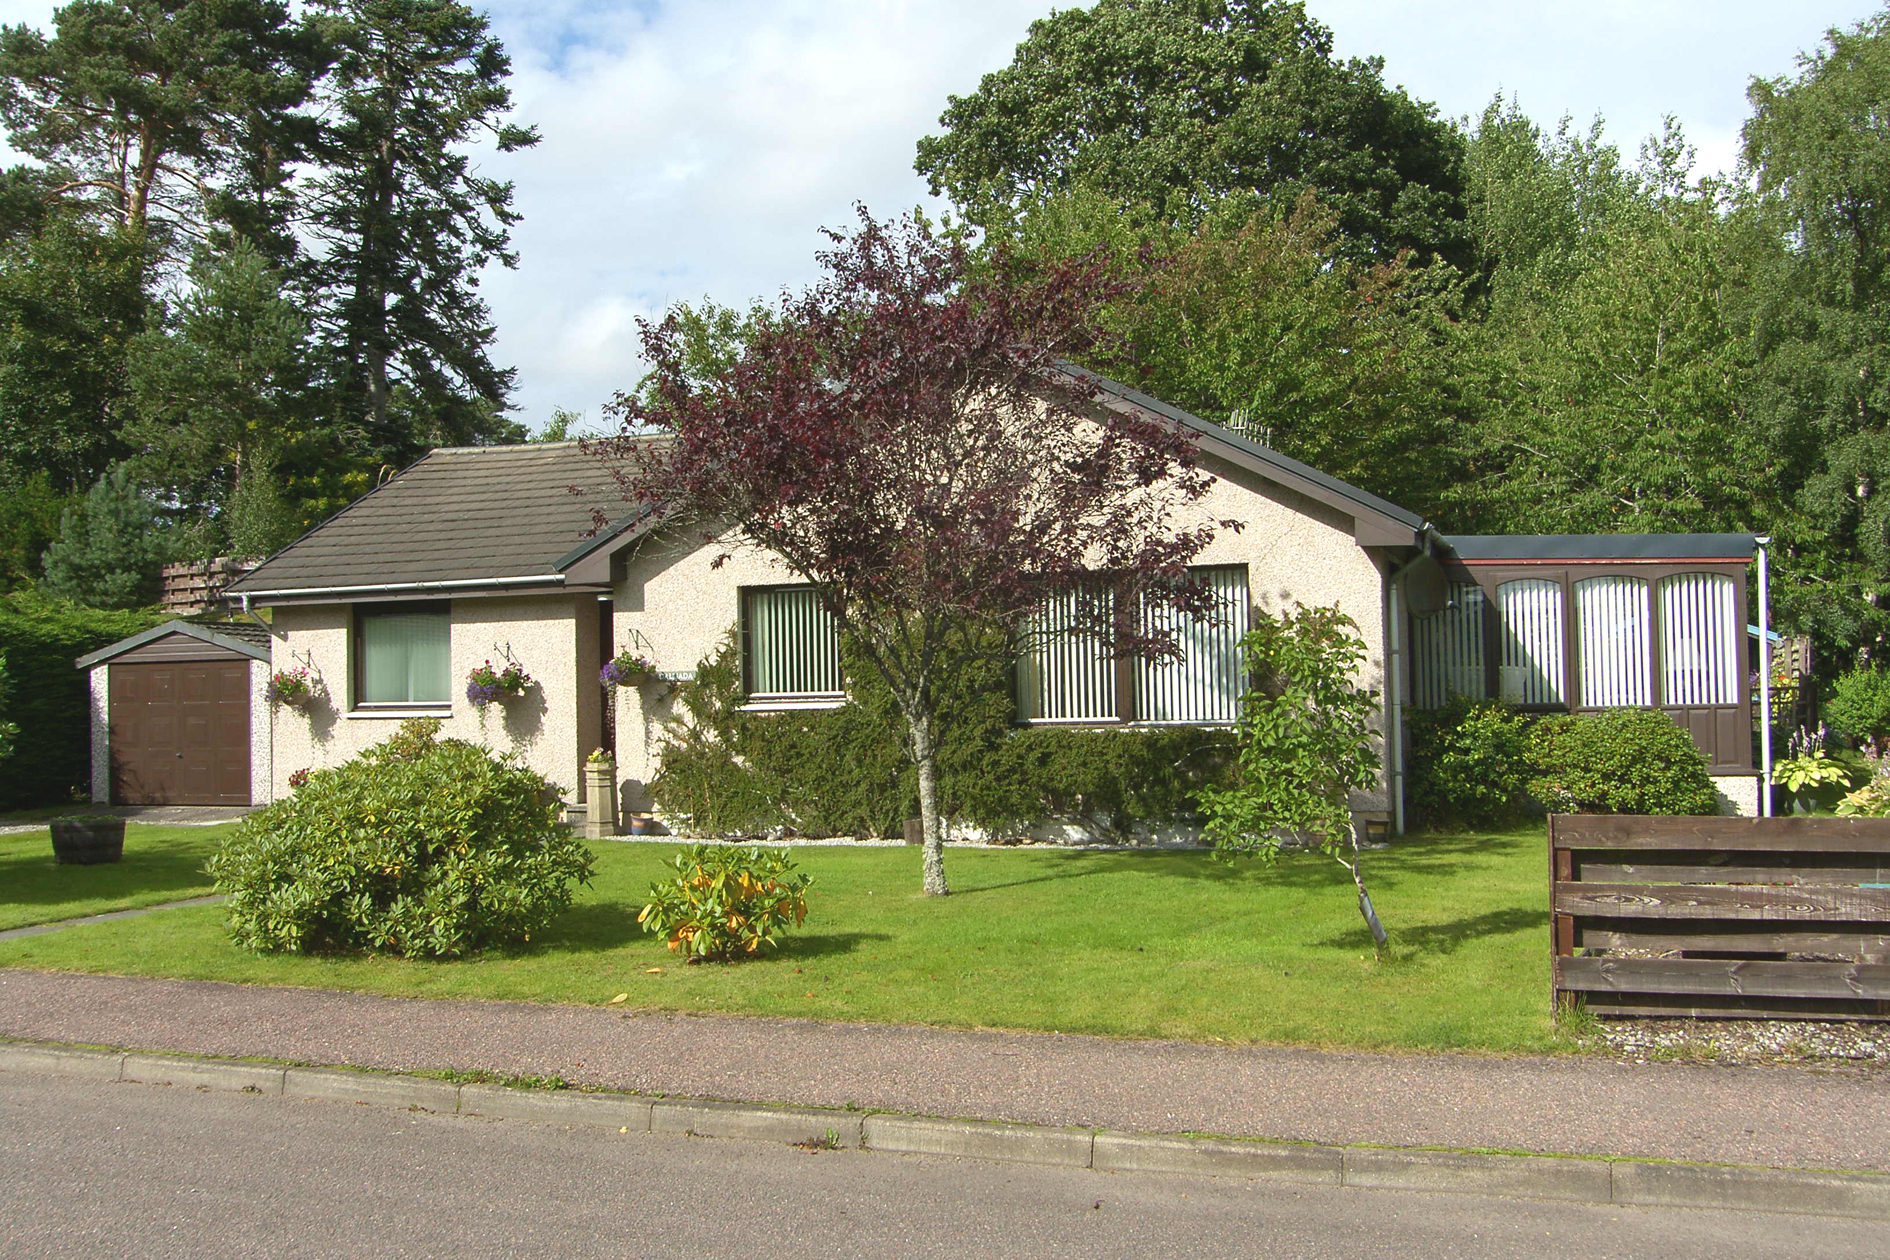 3 Bedrooms Bungalow for sale in St. Columba Road, Newtonmore, PH20 1EF